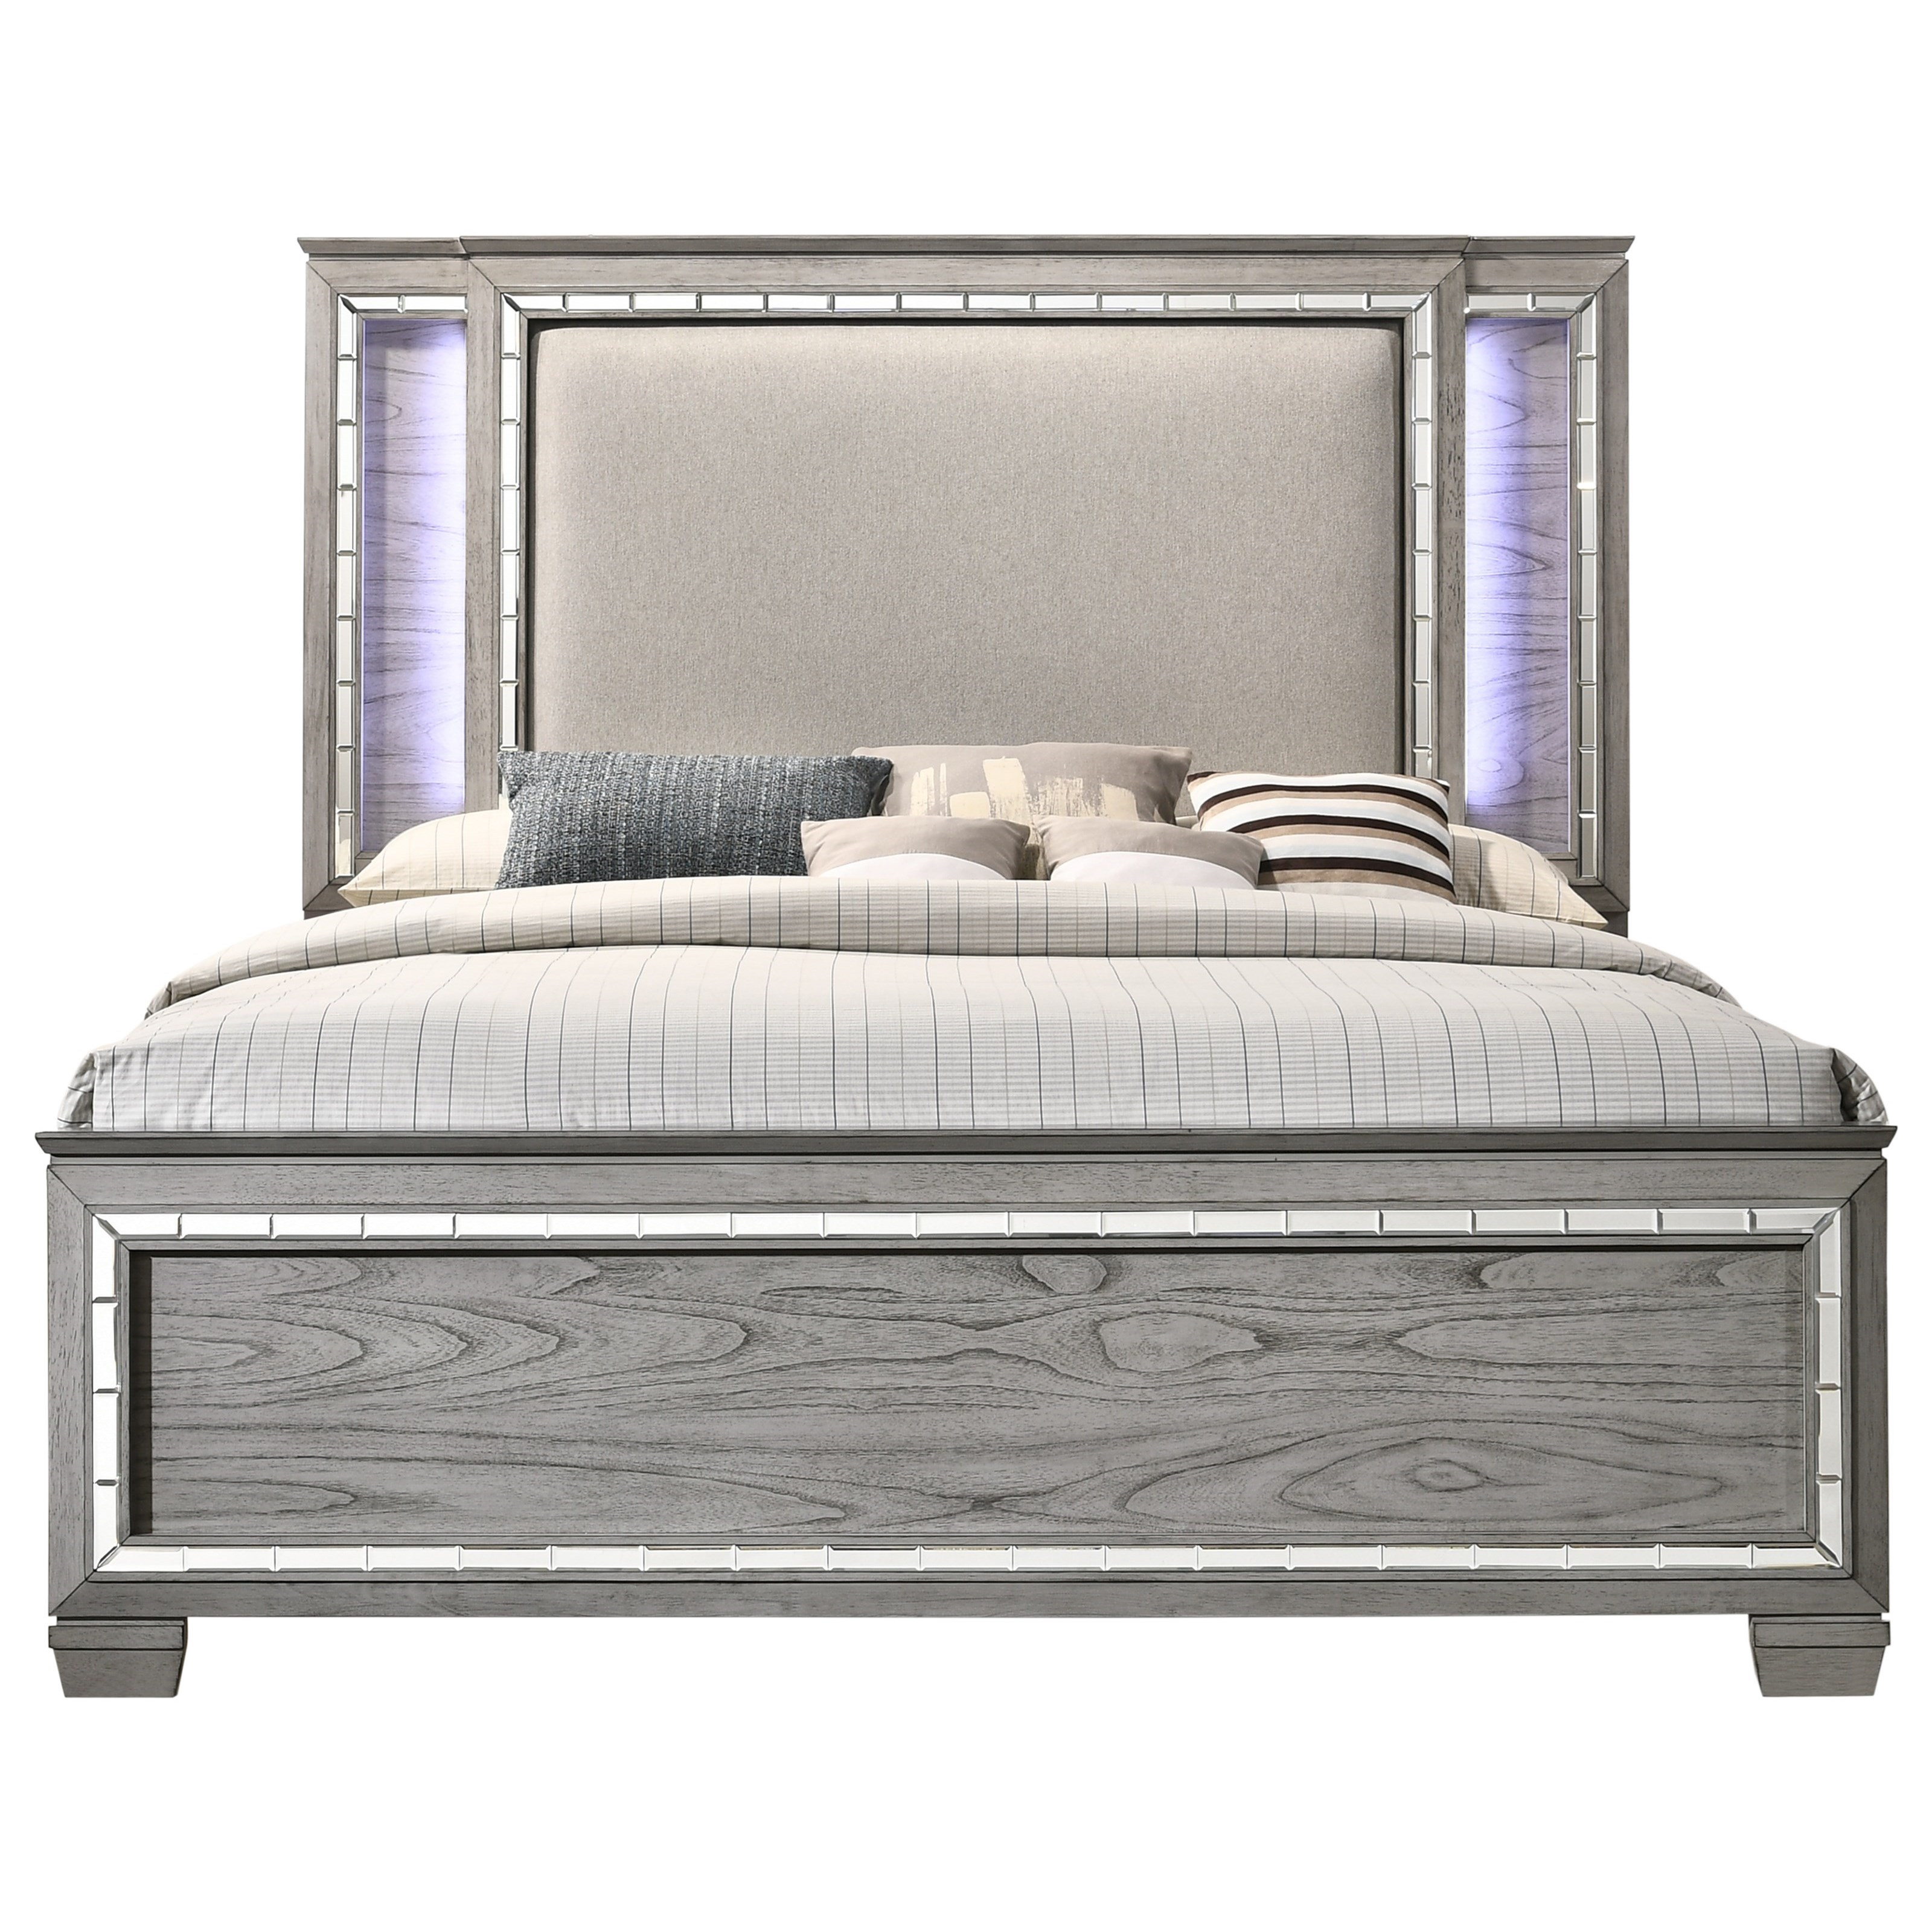 Antares Queen Bed (LED HB) by Acme Furniture at Carolina Direct